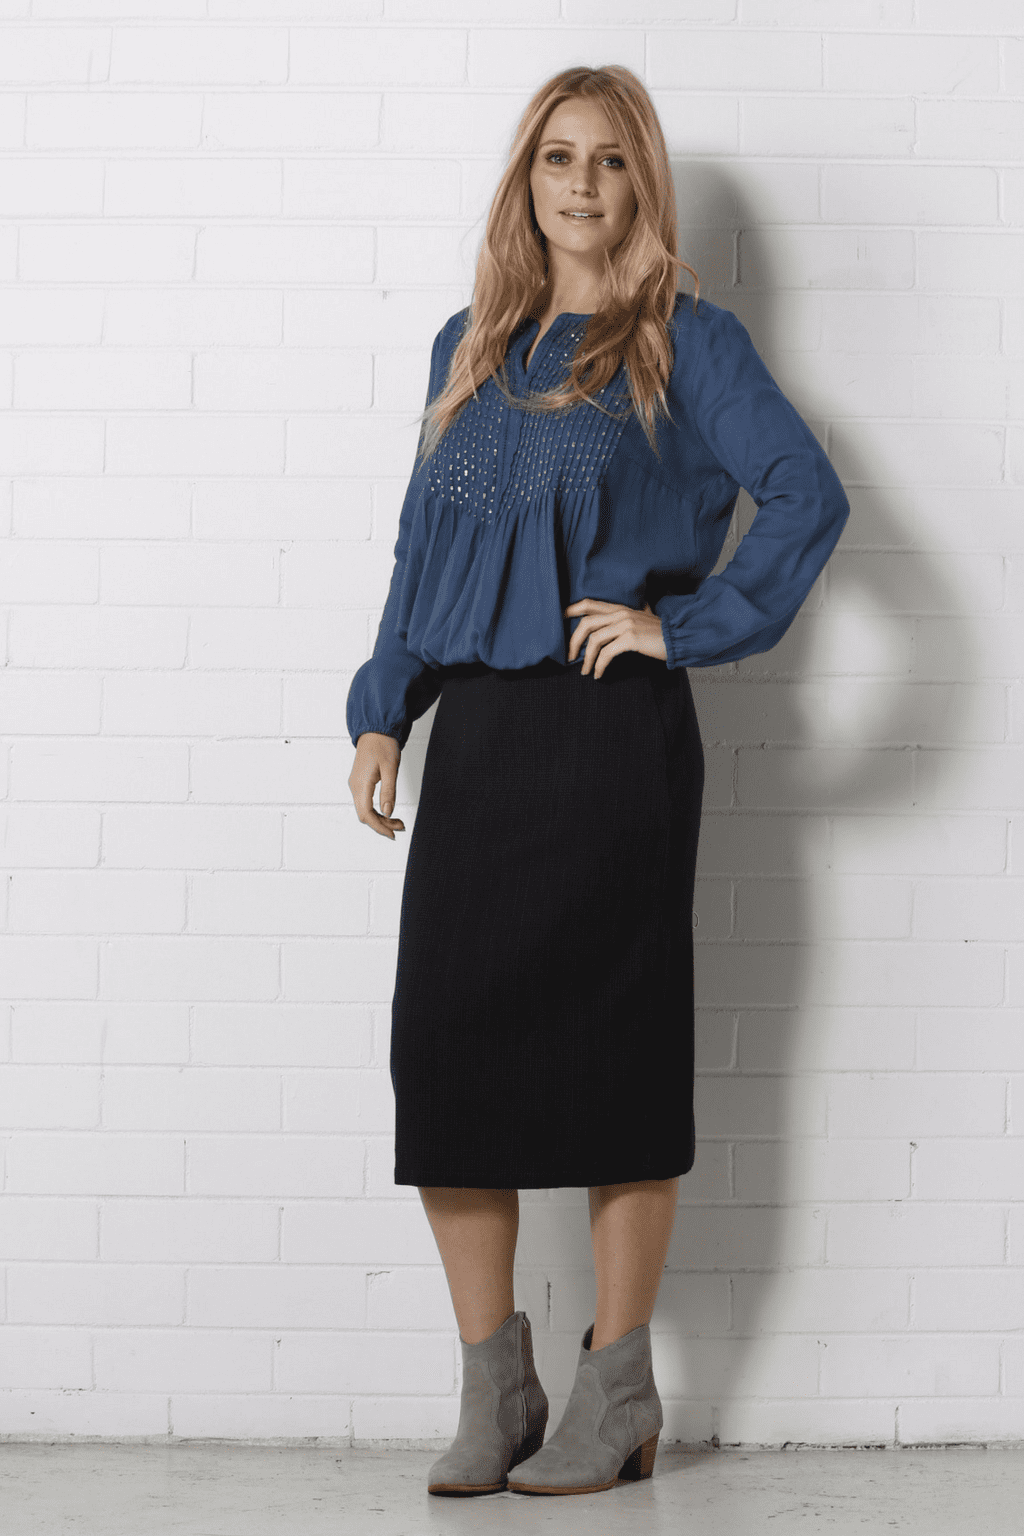 REGINA Skirt - Blue/Black